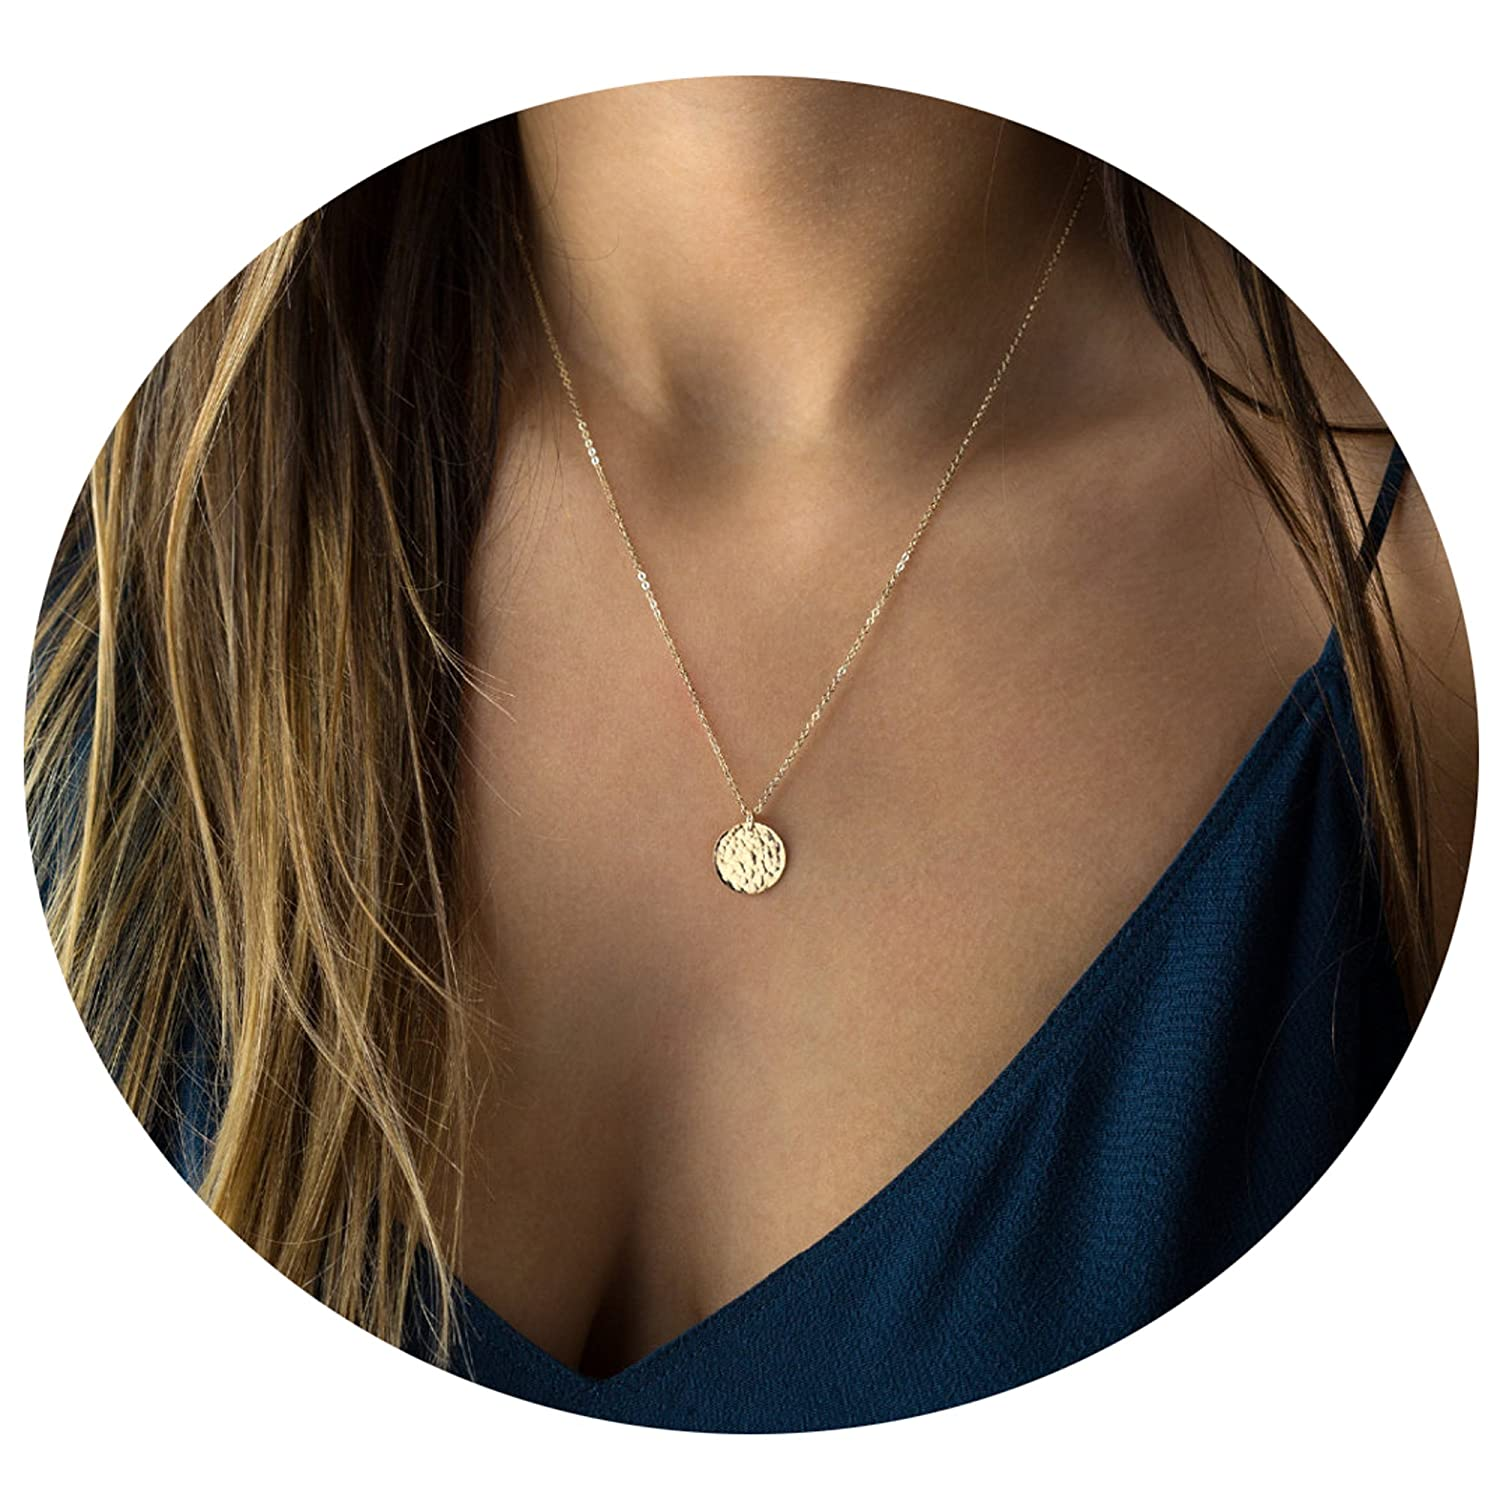 fe55cfc9fc Amazon.com  Befettly Full Moon Pendant Necklace 14k Gold Fill Dainty Moon  Phase Simple Moon Choker Crescent Moon Necklace-Full Moon  Jewelry